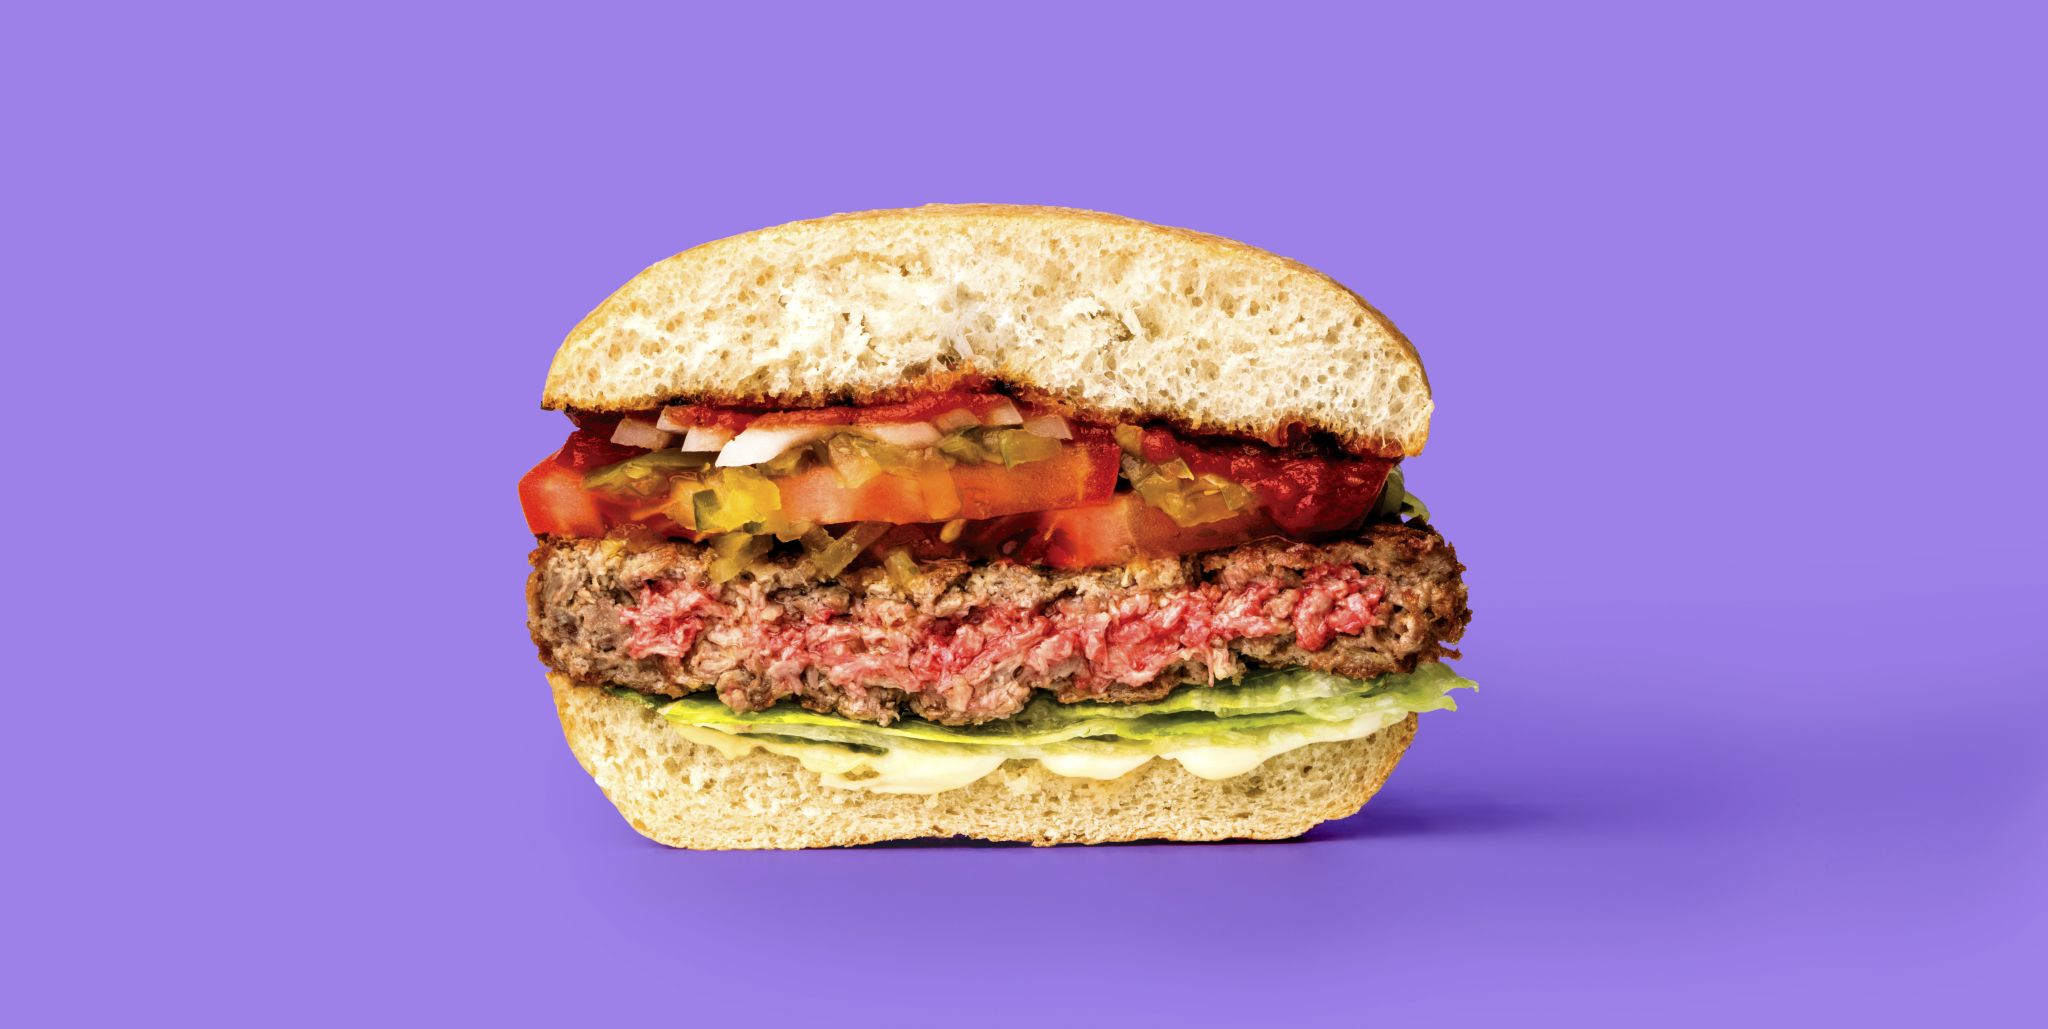 Impossible burger patty cut in half